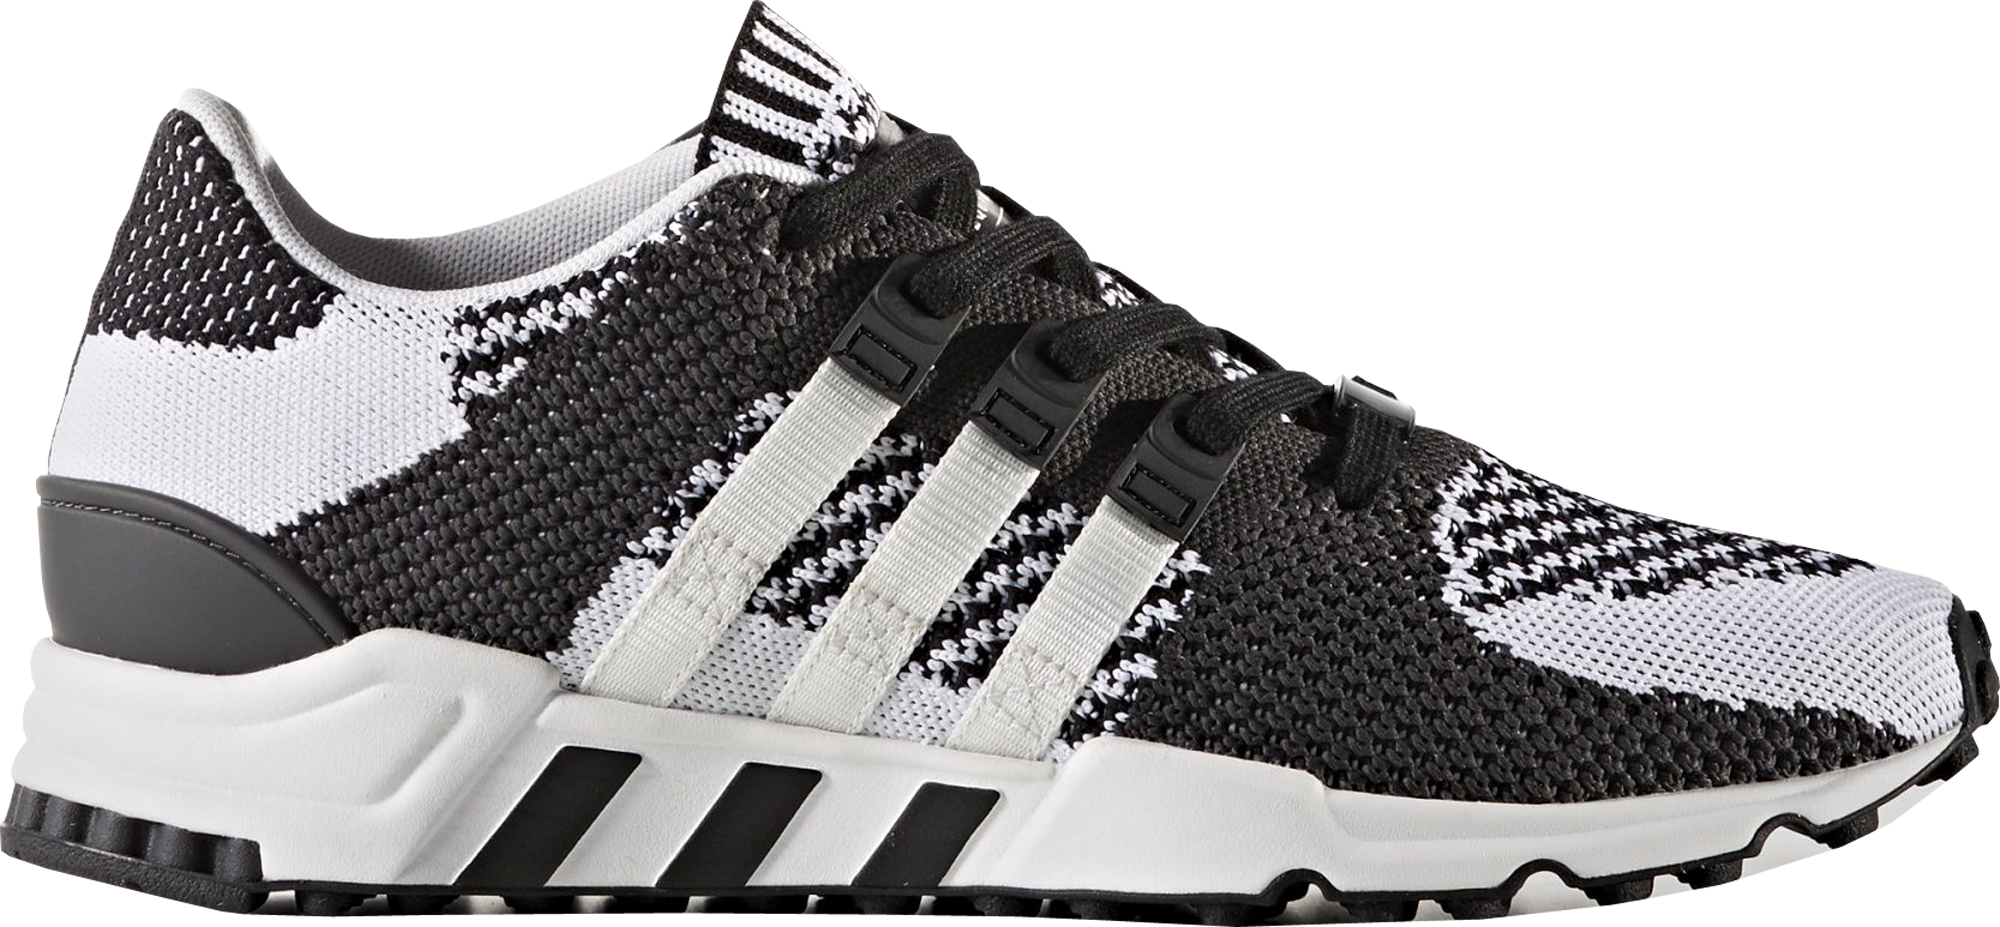 Support Primeknit News Adidas Stockx White Black Rf Eqt FclK1J